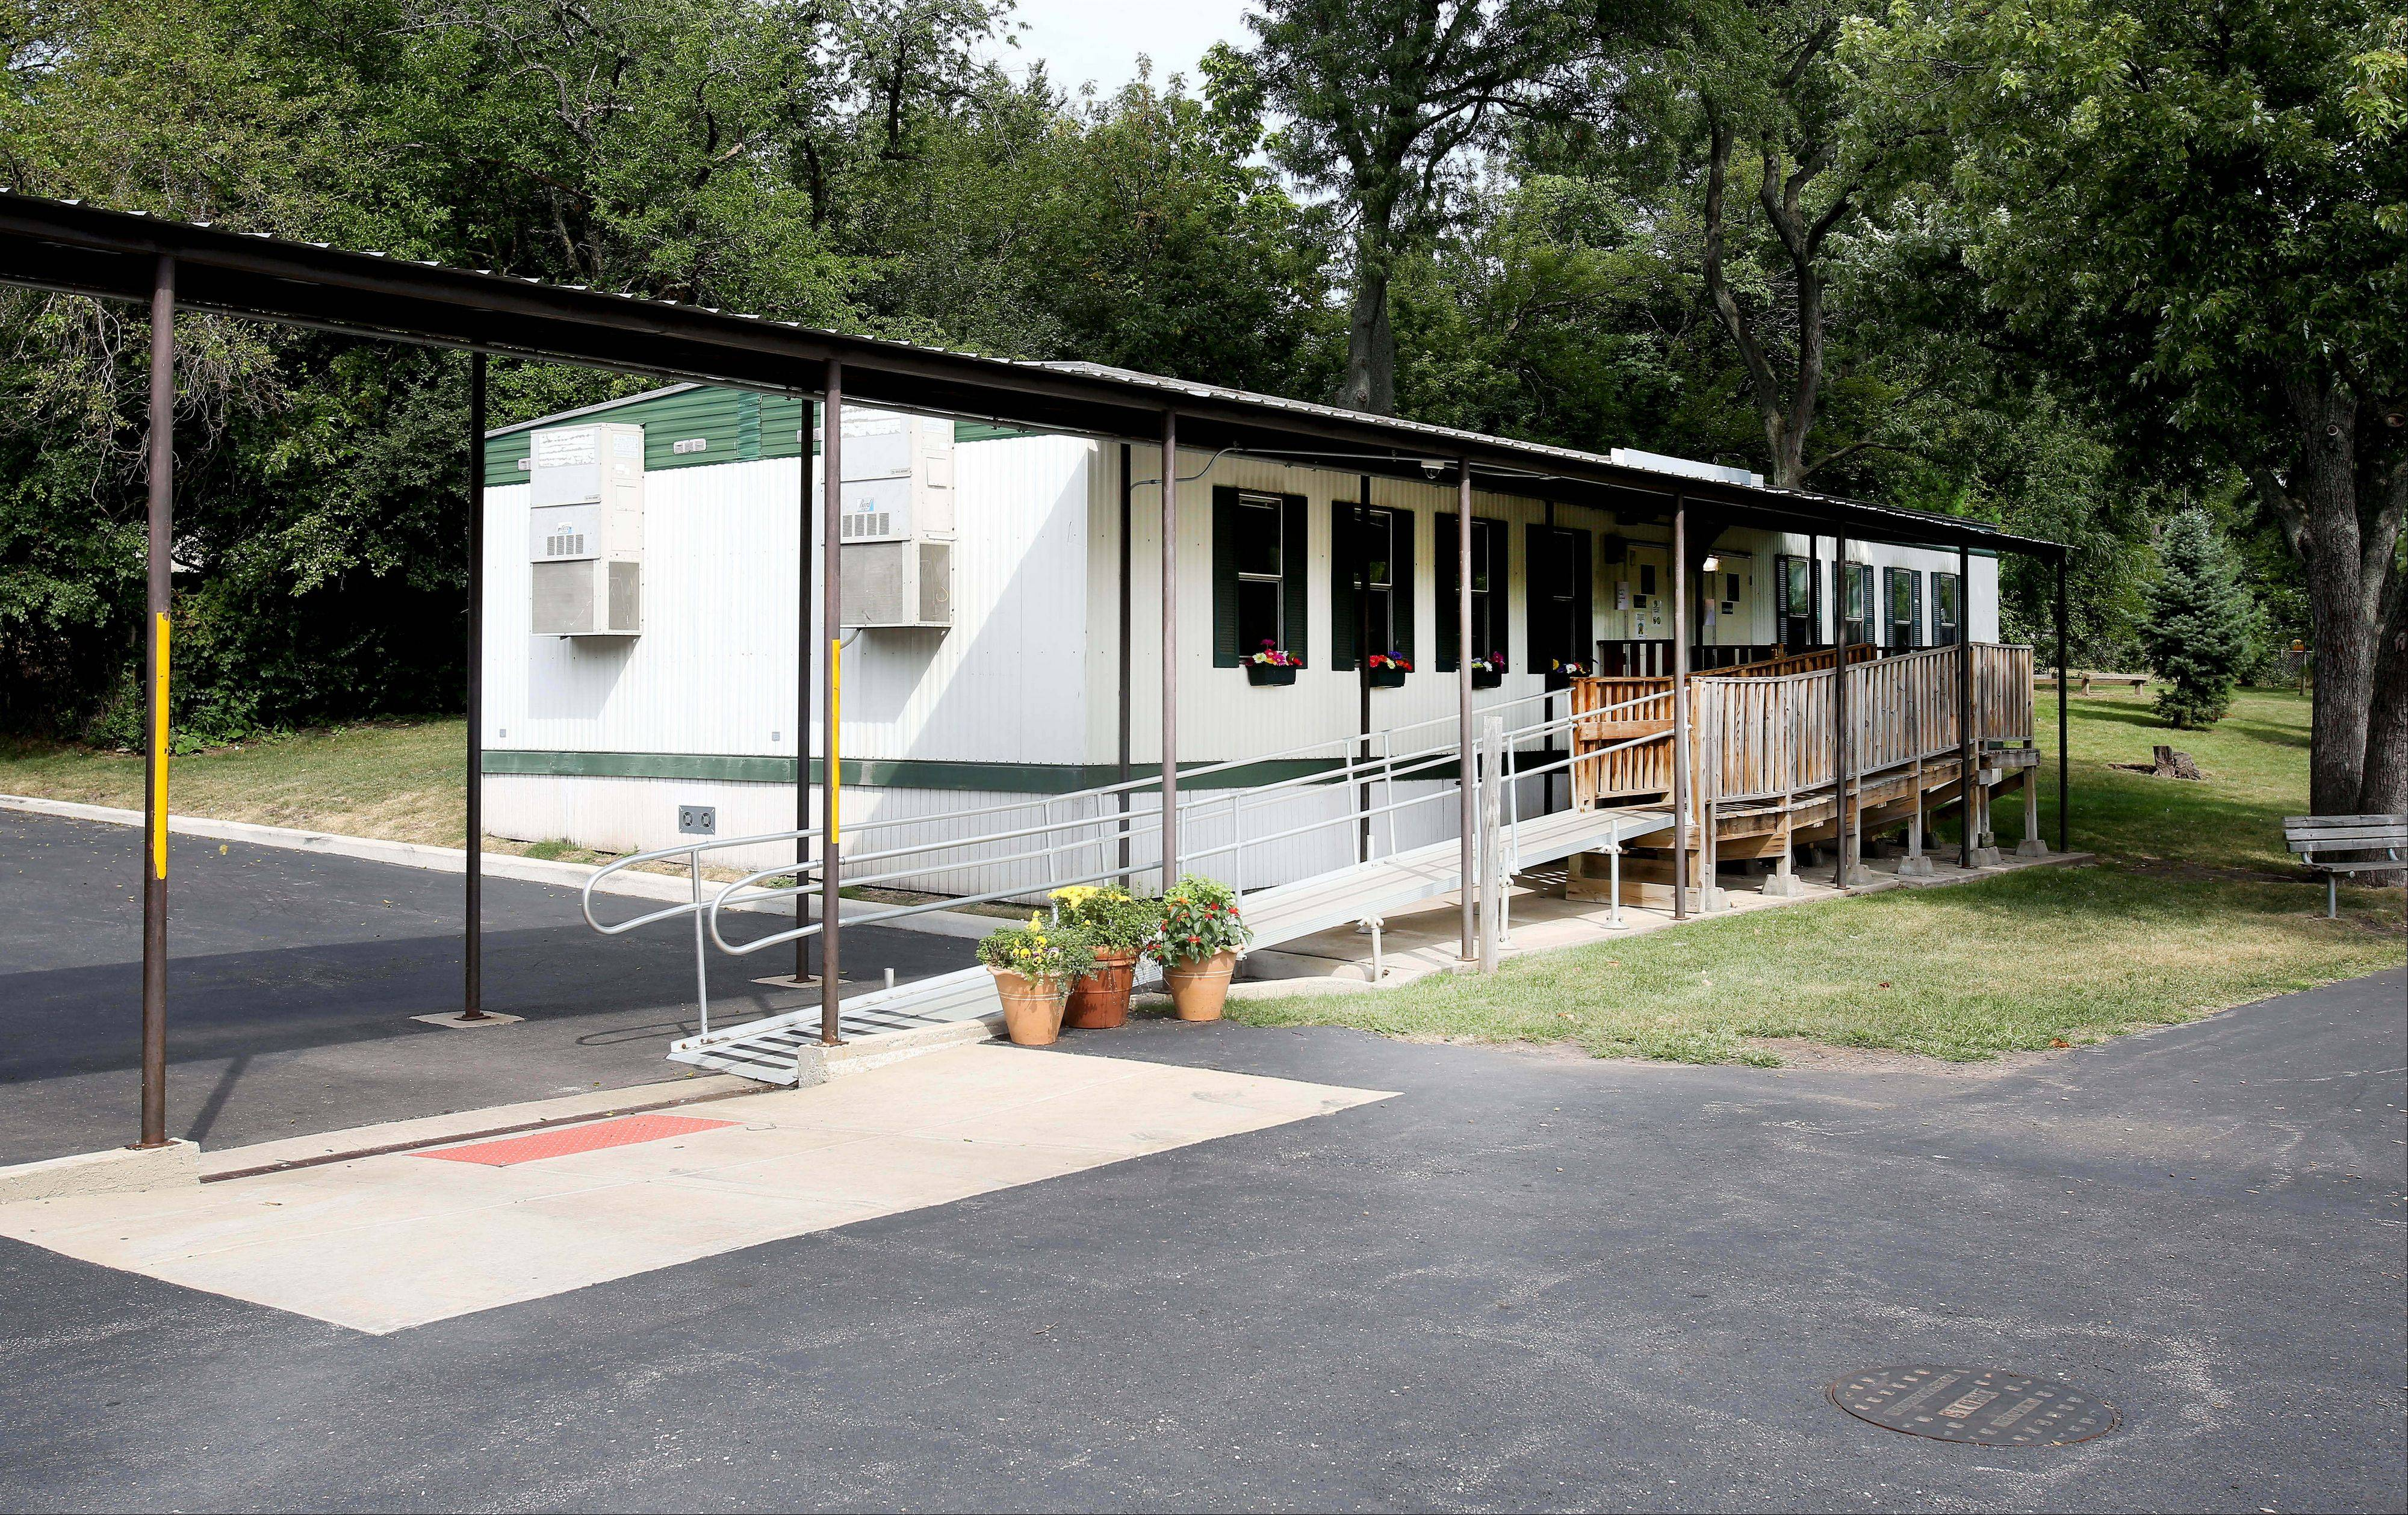 Gnat infestation closes portable classroom in Glen Ellyn